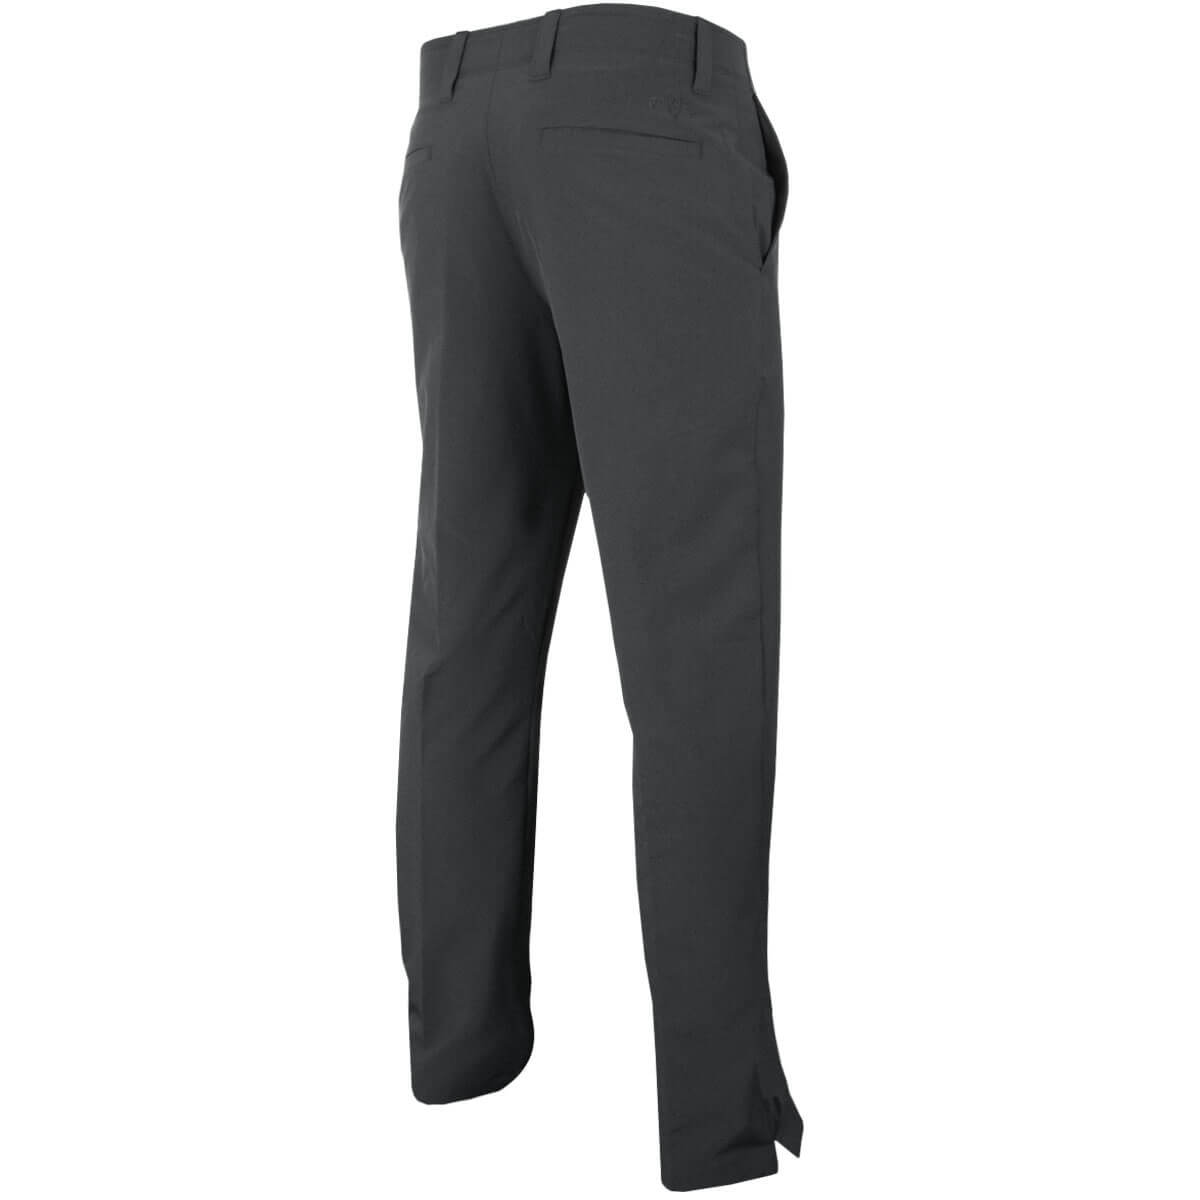 Callaway-Golf-Mens-2020-Chev-Tech-II-Lightweight-Golf-Trousers-27-OFF-RRP thumbnail 3